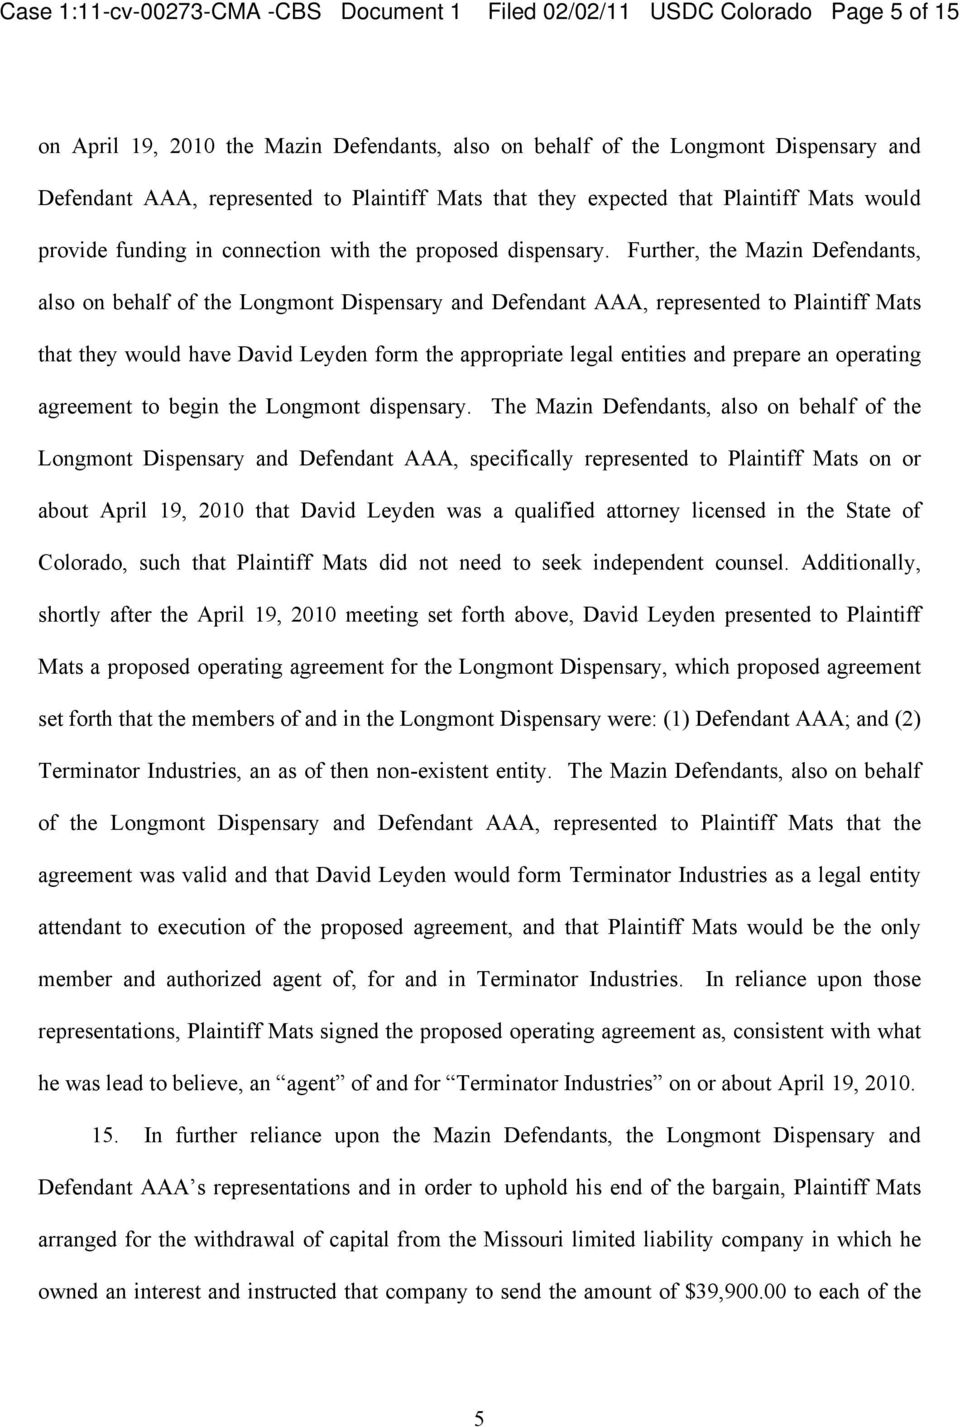 Further, the Mazin Defendants, also on behalf of the Longmont Dispensary and Defendant AAA, represented to Plaintiff Mats that they would have David Leyden form the appropriate legal entities and